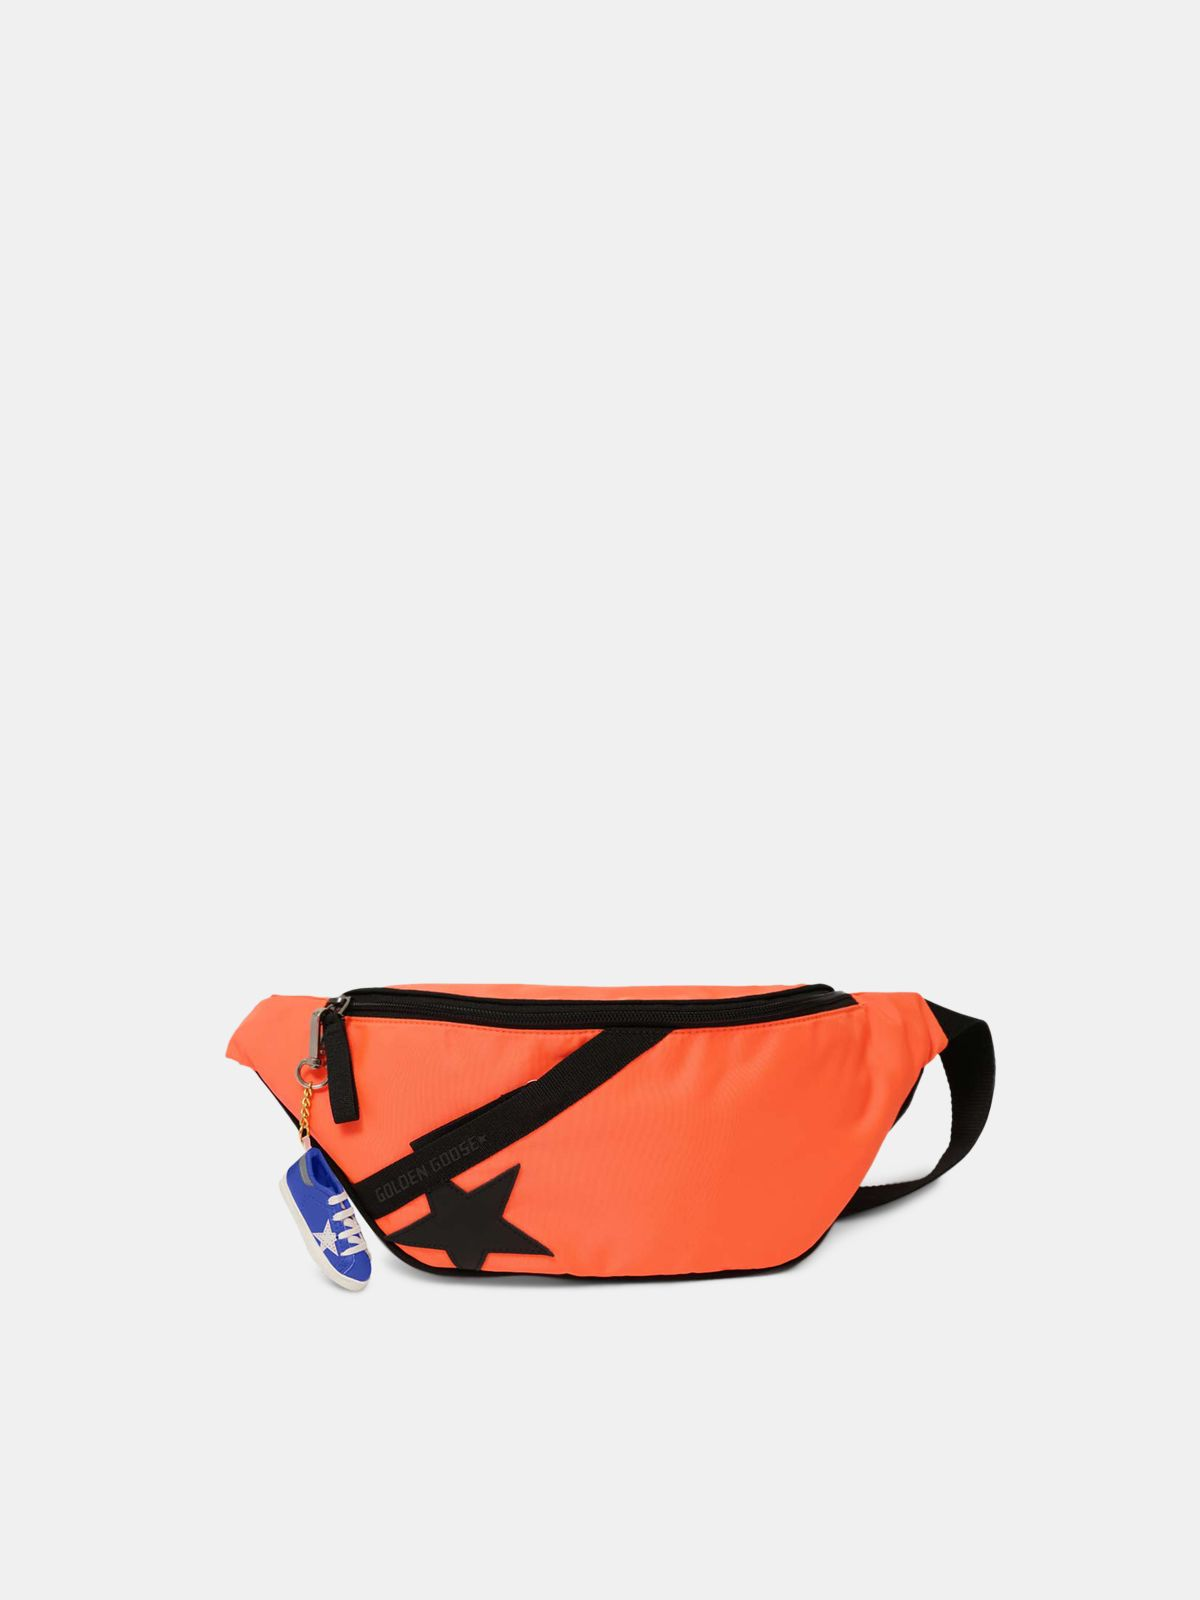 Sac banane Journey en nylon orange fluo